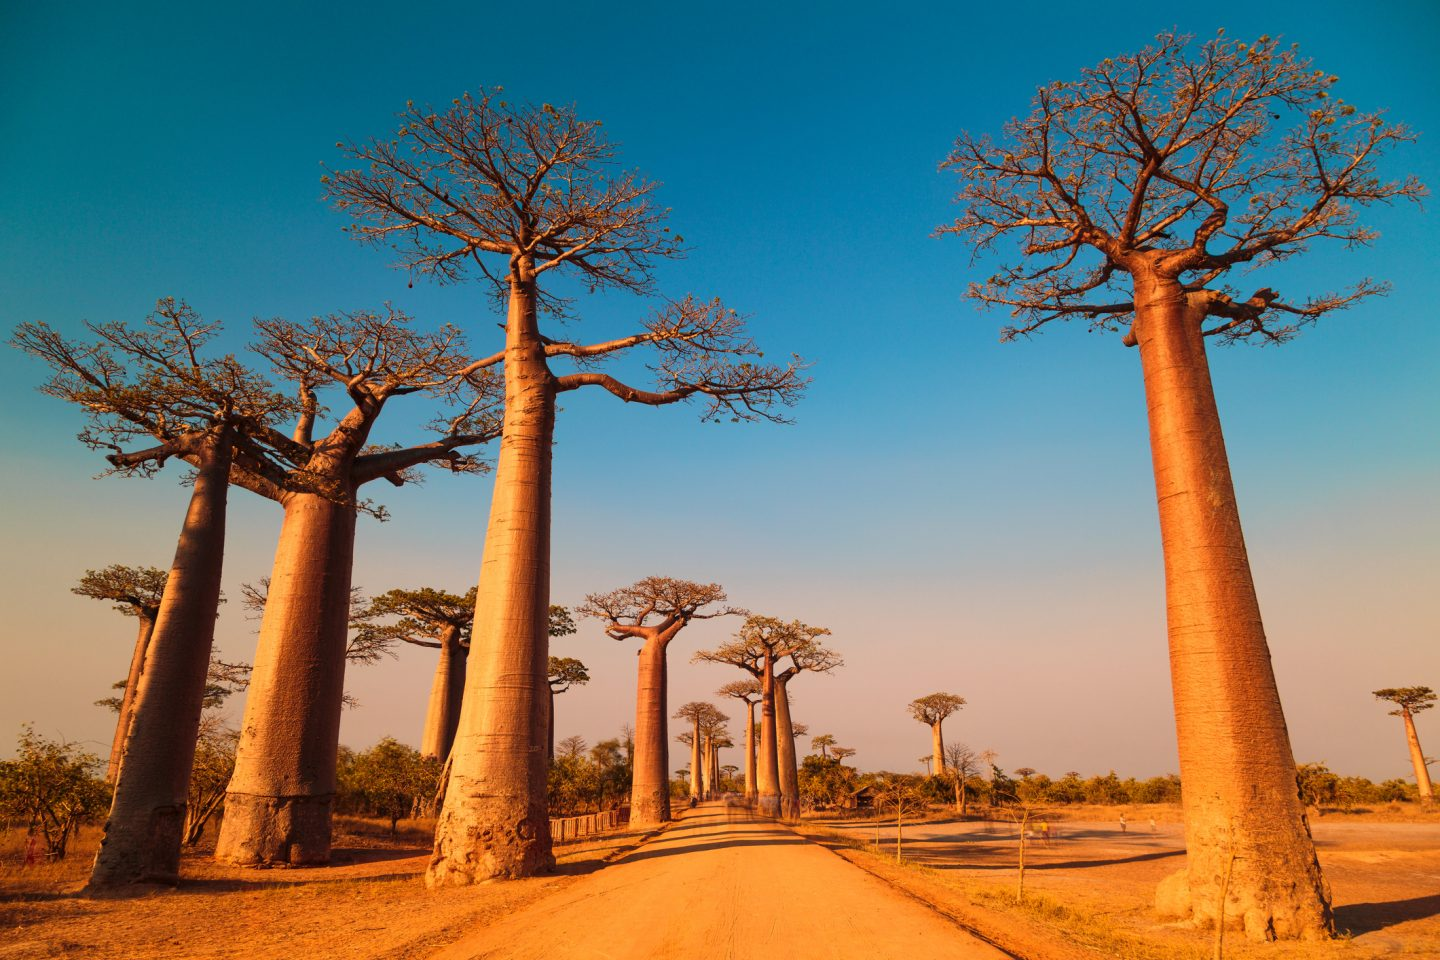 baobab trees have started dying.